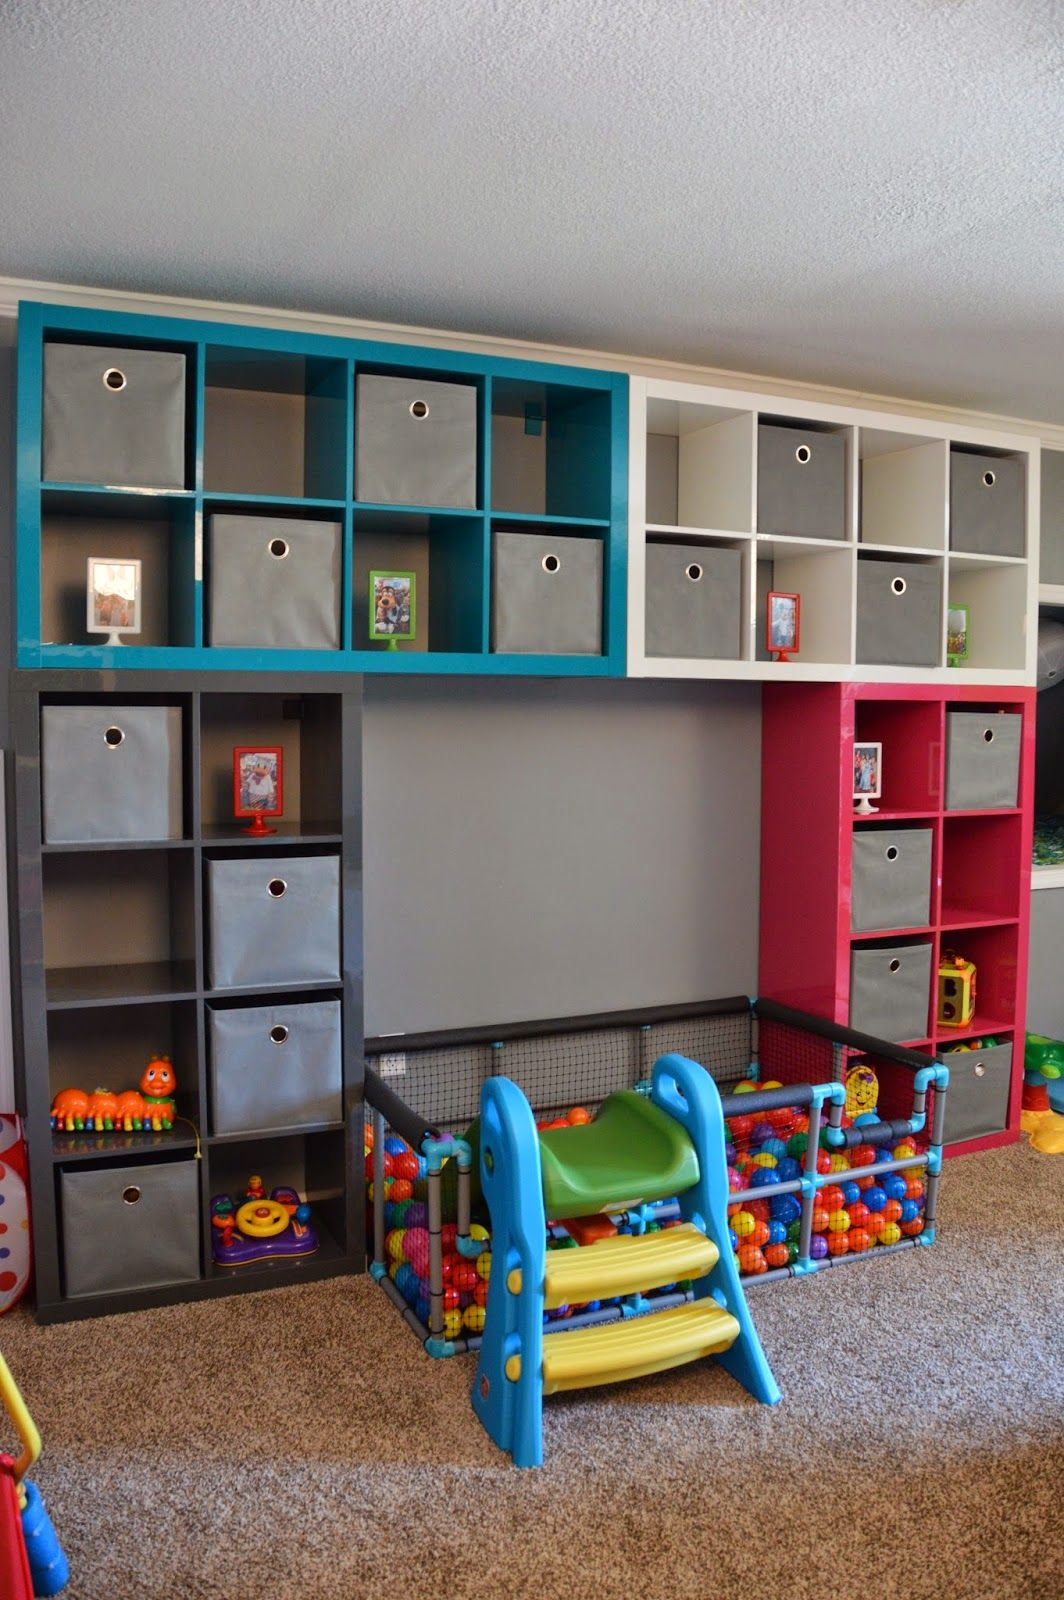 7+1 Toy Storage Ideas DIY Plans In A Small Space [Your ...